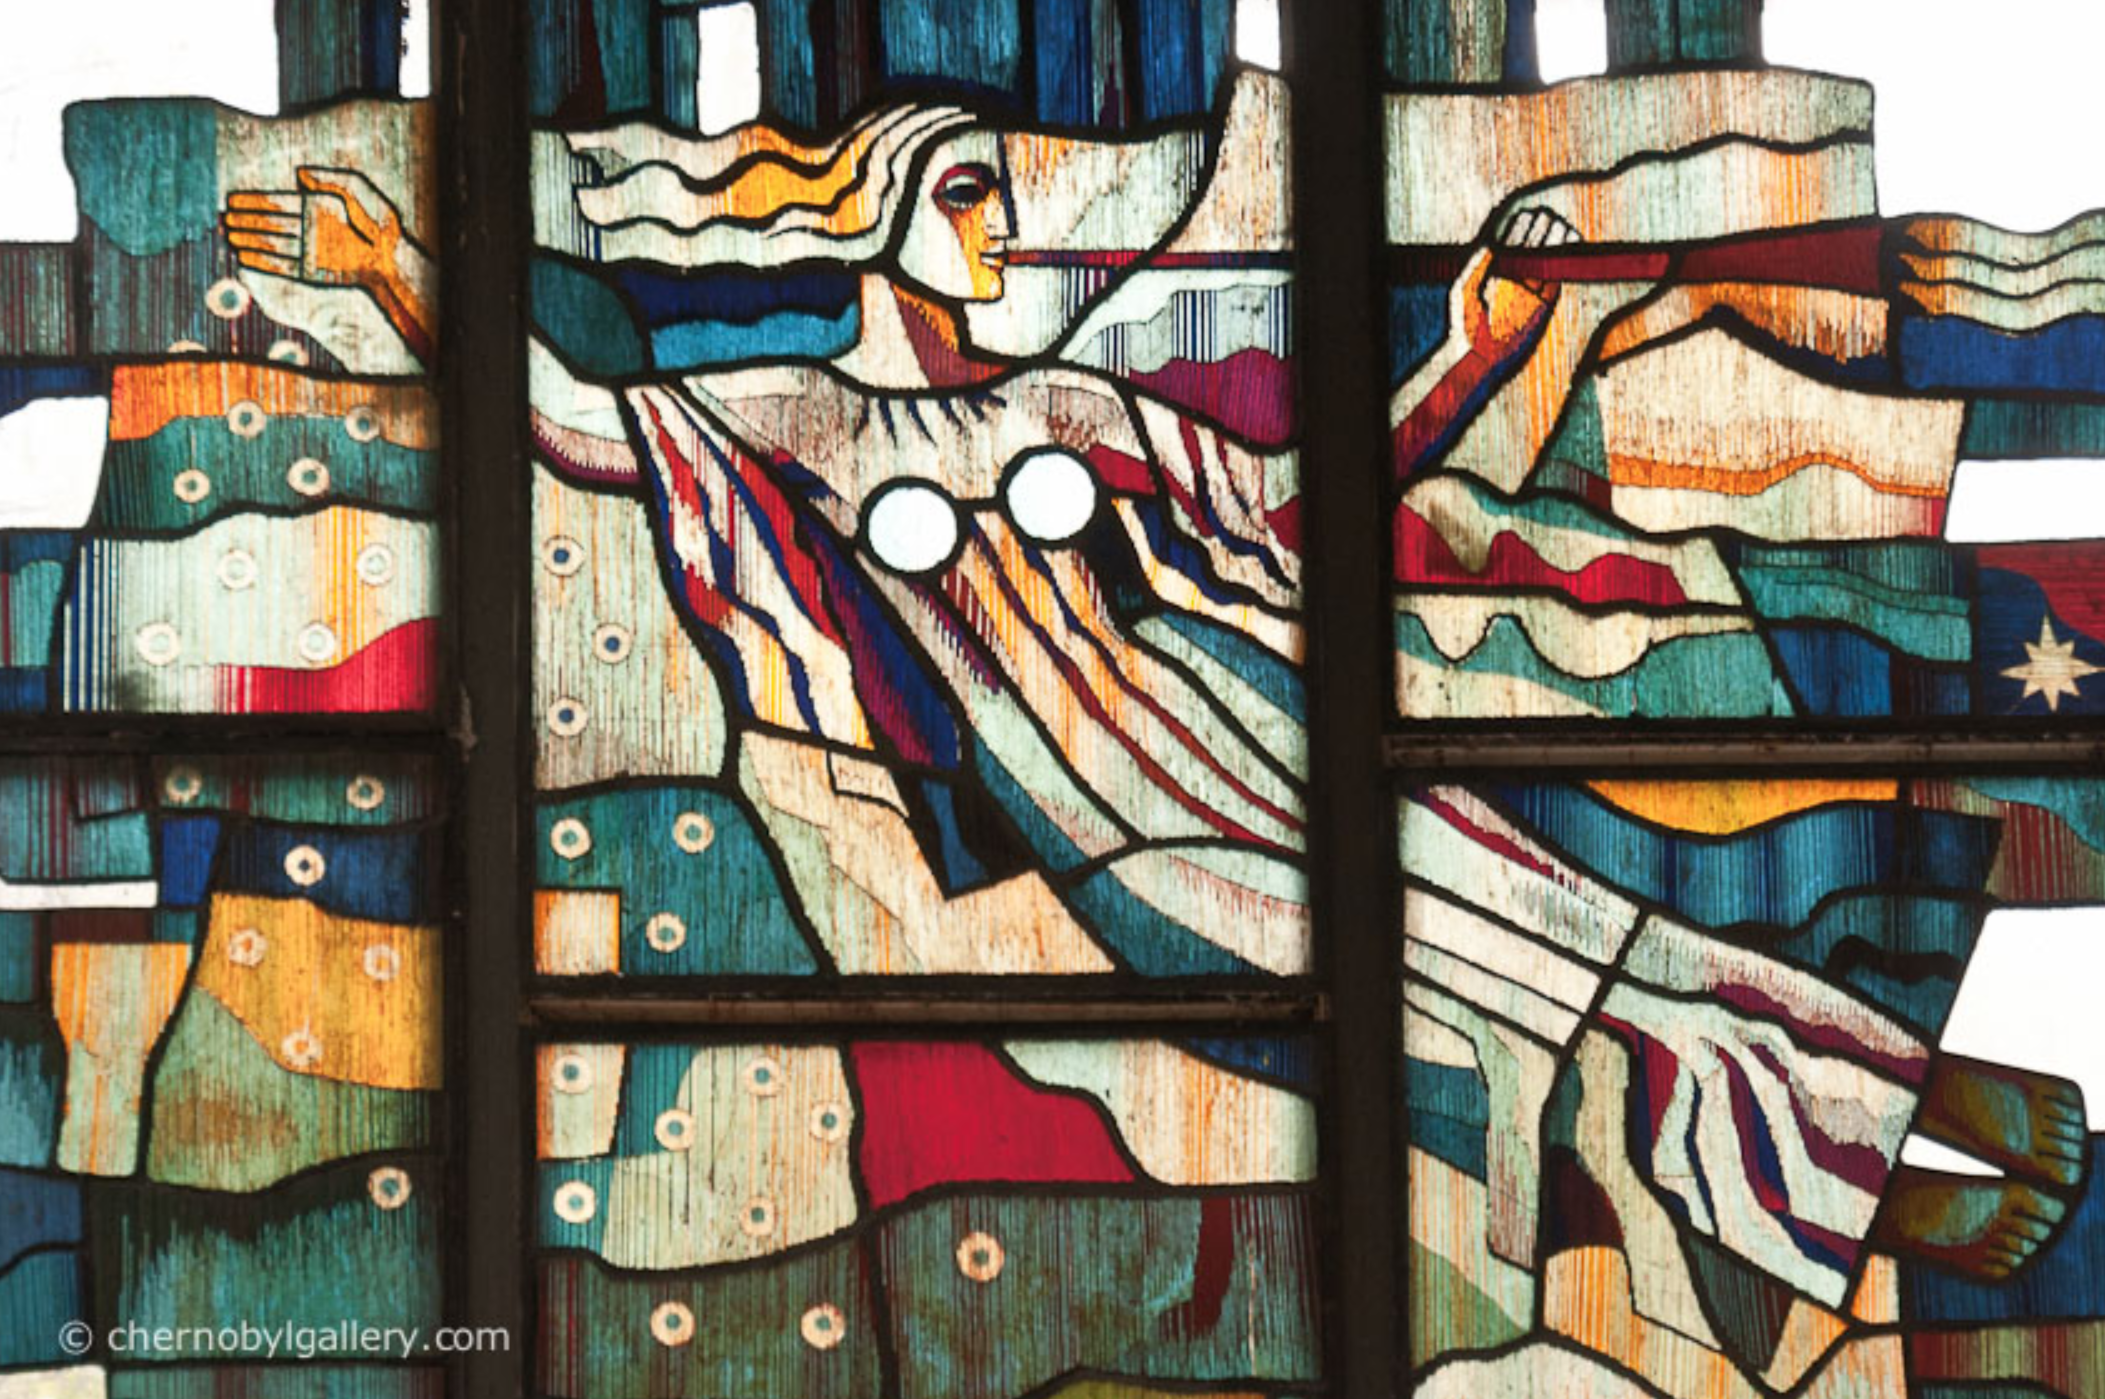 stained glass window facing the street (photo credit: chernobylgallery.com)